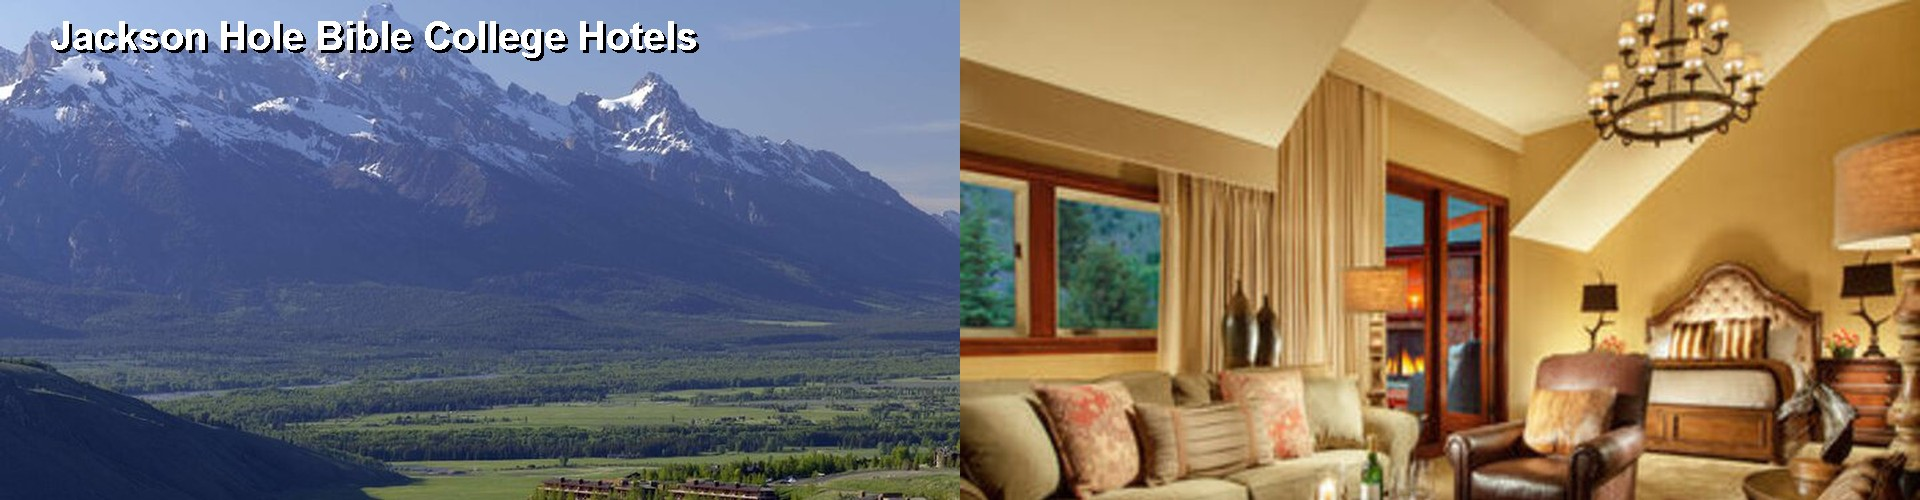 5 Best Hotels near Jackson Hole Bible College